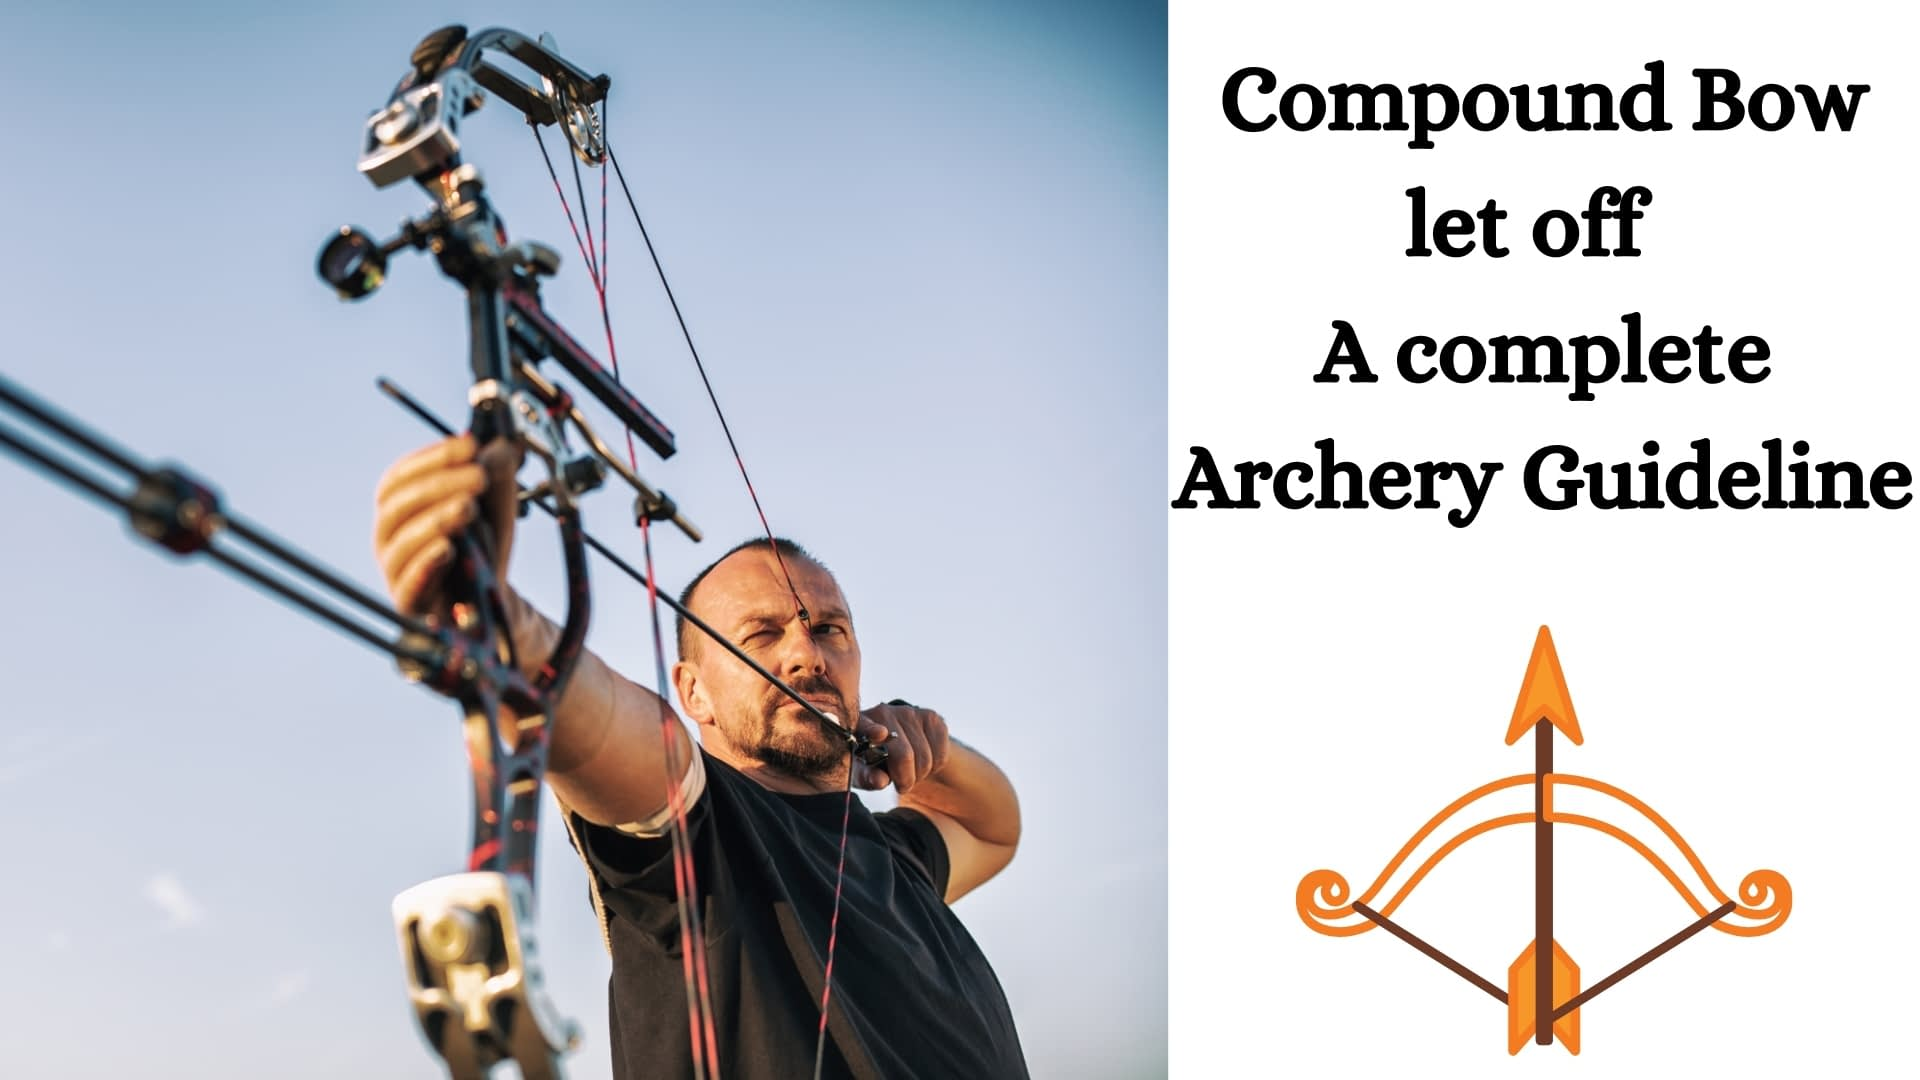 Compound Bow let off